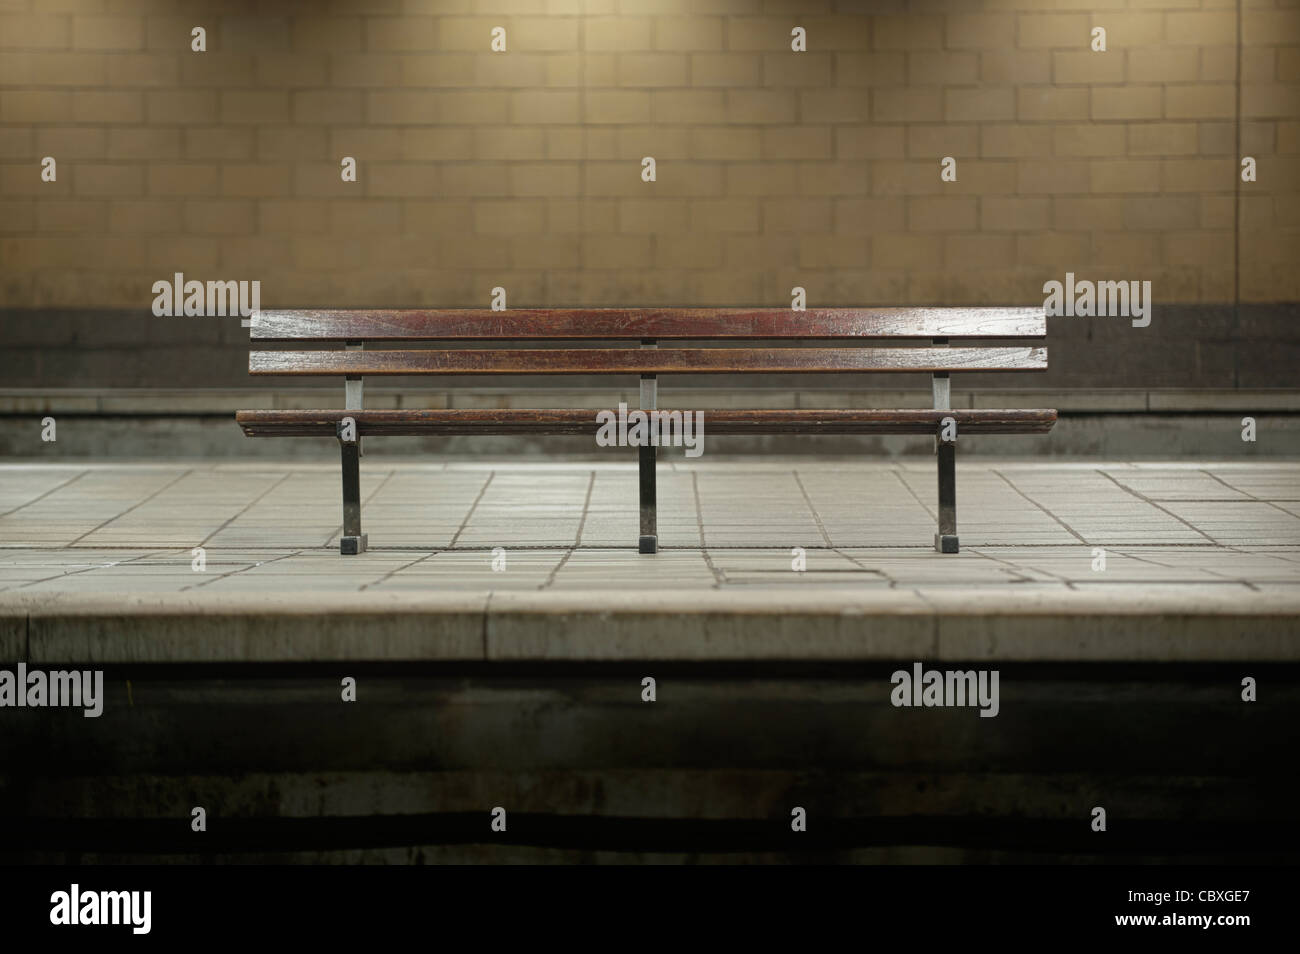 A passenger bench without people sits alone at Victoria station in Manchester, suggesting a rail strike. - Stock Image